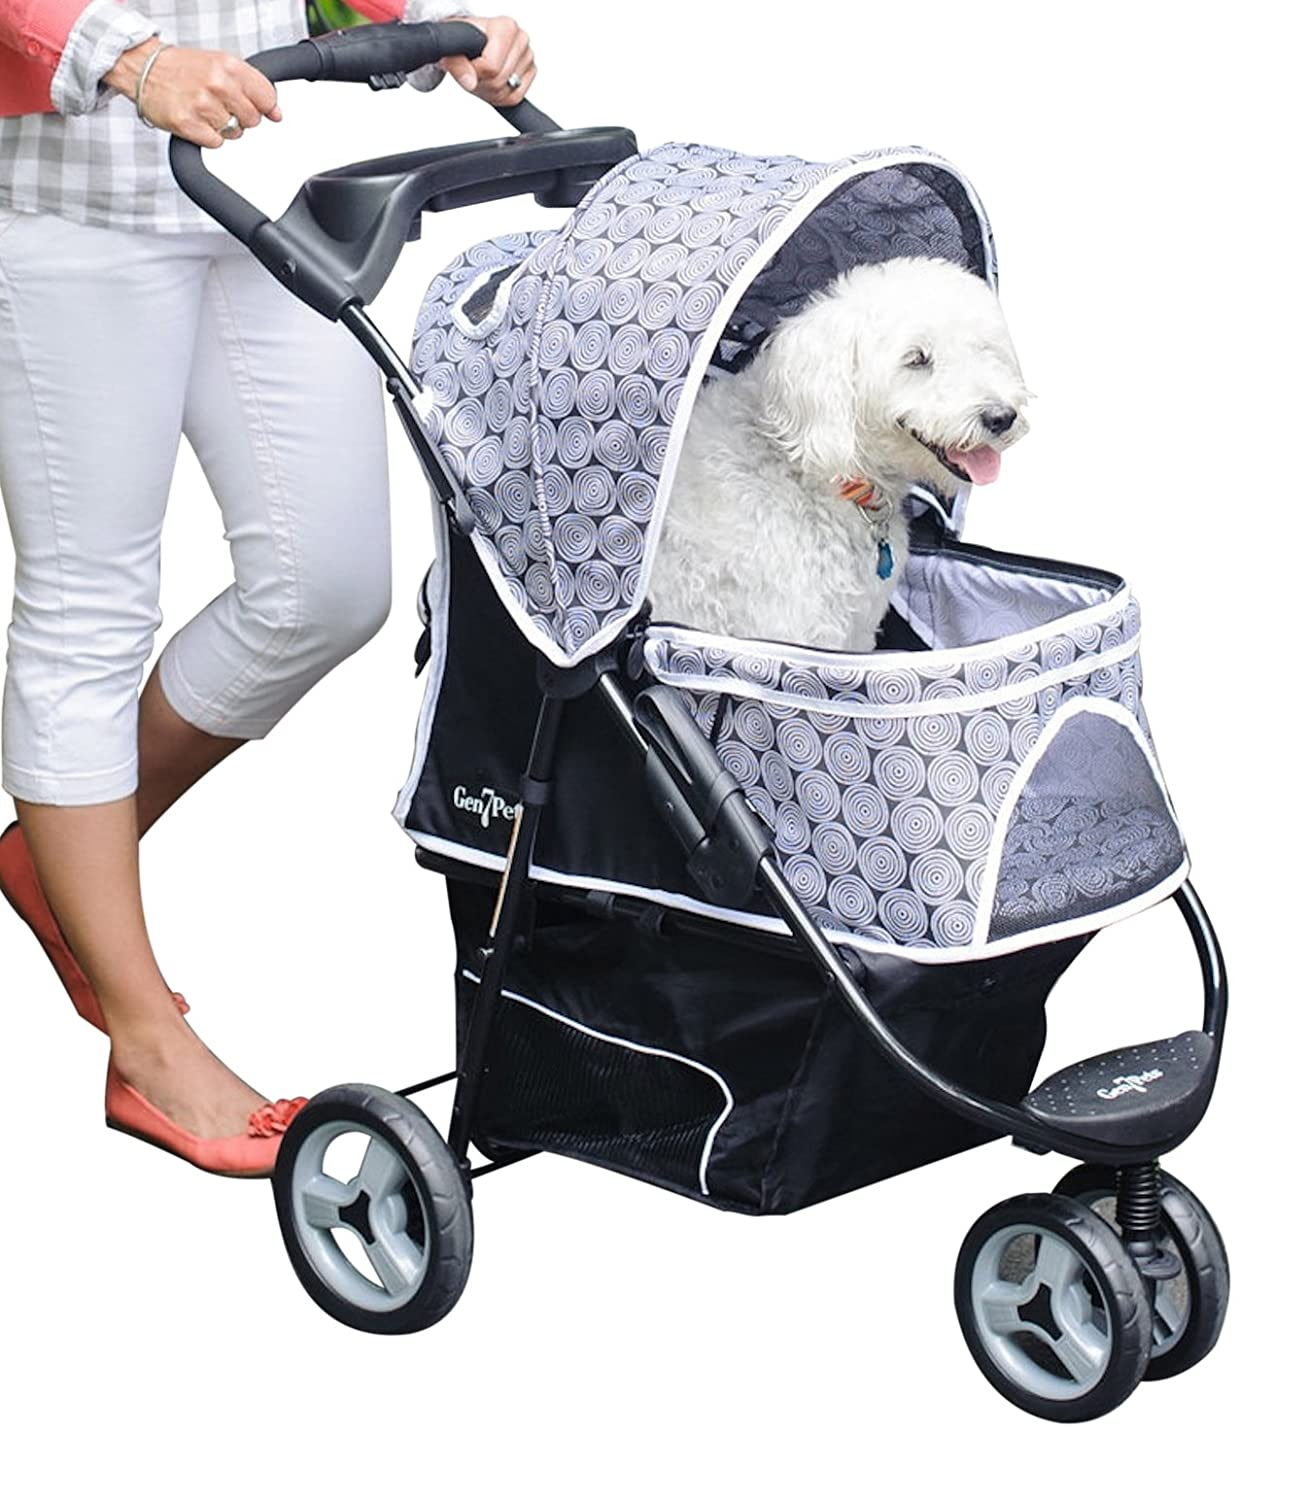 Stroller-cane Baby Care GT4: photos, review, pros and cons of the model, customer reviews 39